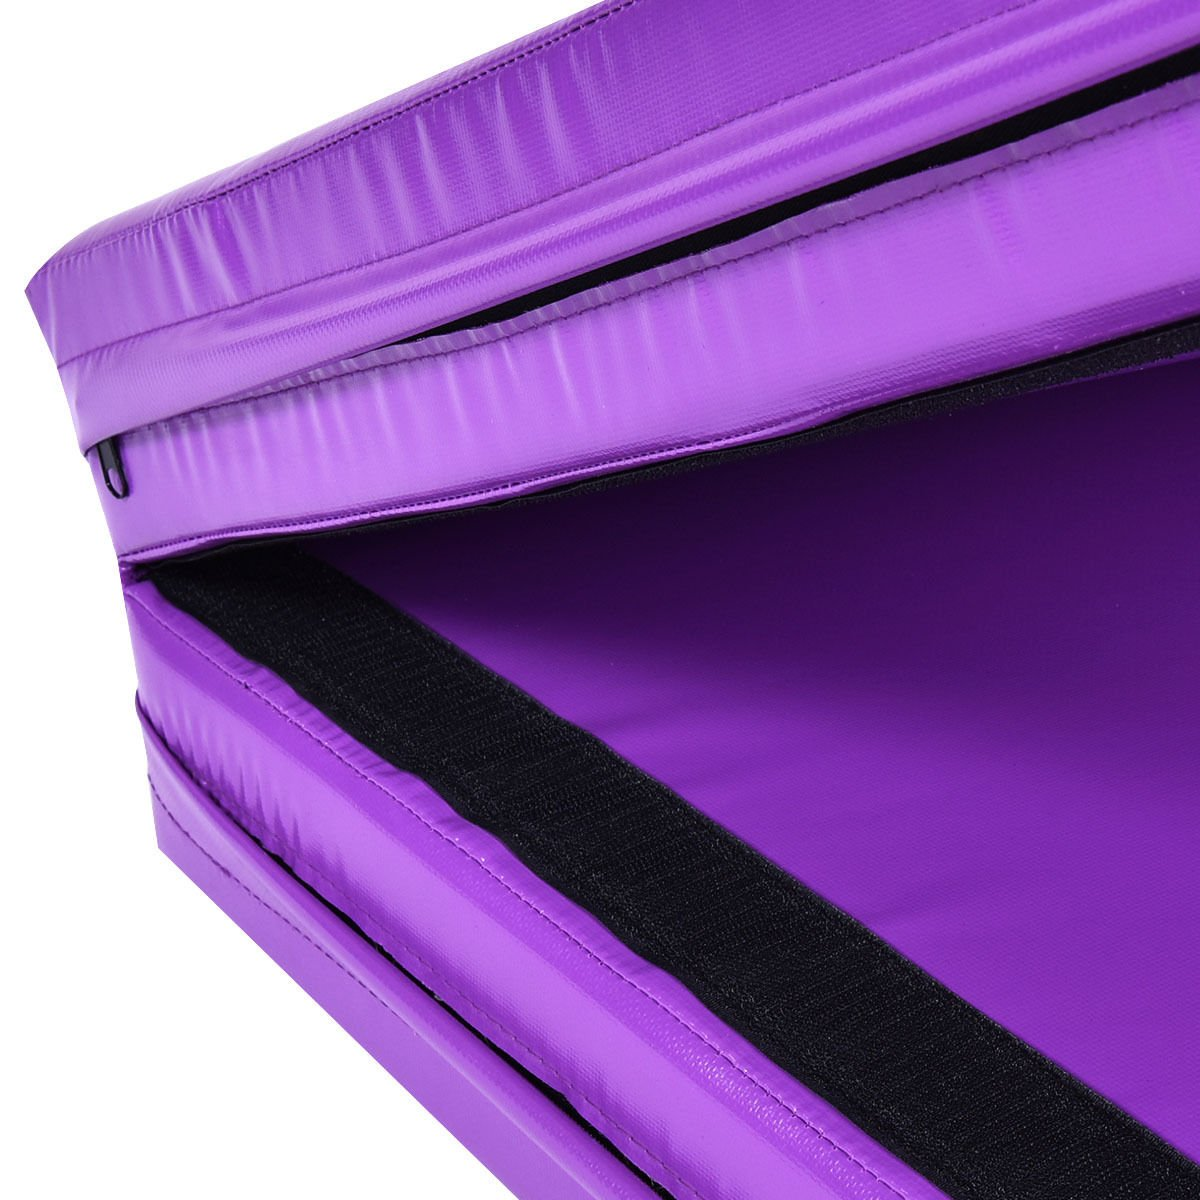 New 6'x38''X4'' Gymnastics Mat Thick Two Folding Panel Fitness Exercise Purple by MTN Gearsmith (Image #6)